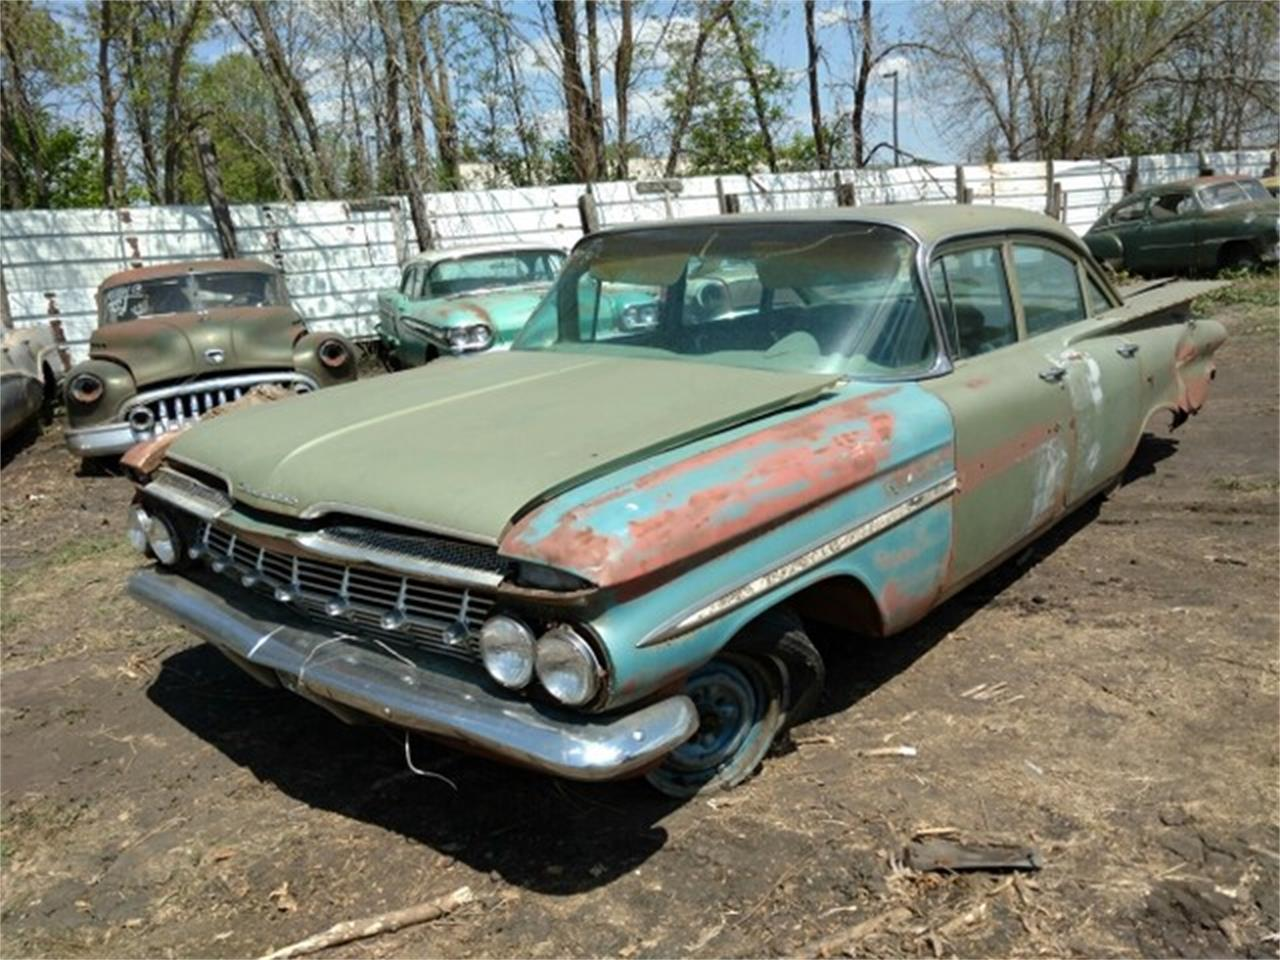 Mankato Car Dealers >> 1959 Chevrolet Biscayne for Sale | ClassicCars.com | CC-850458